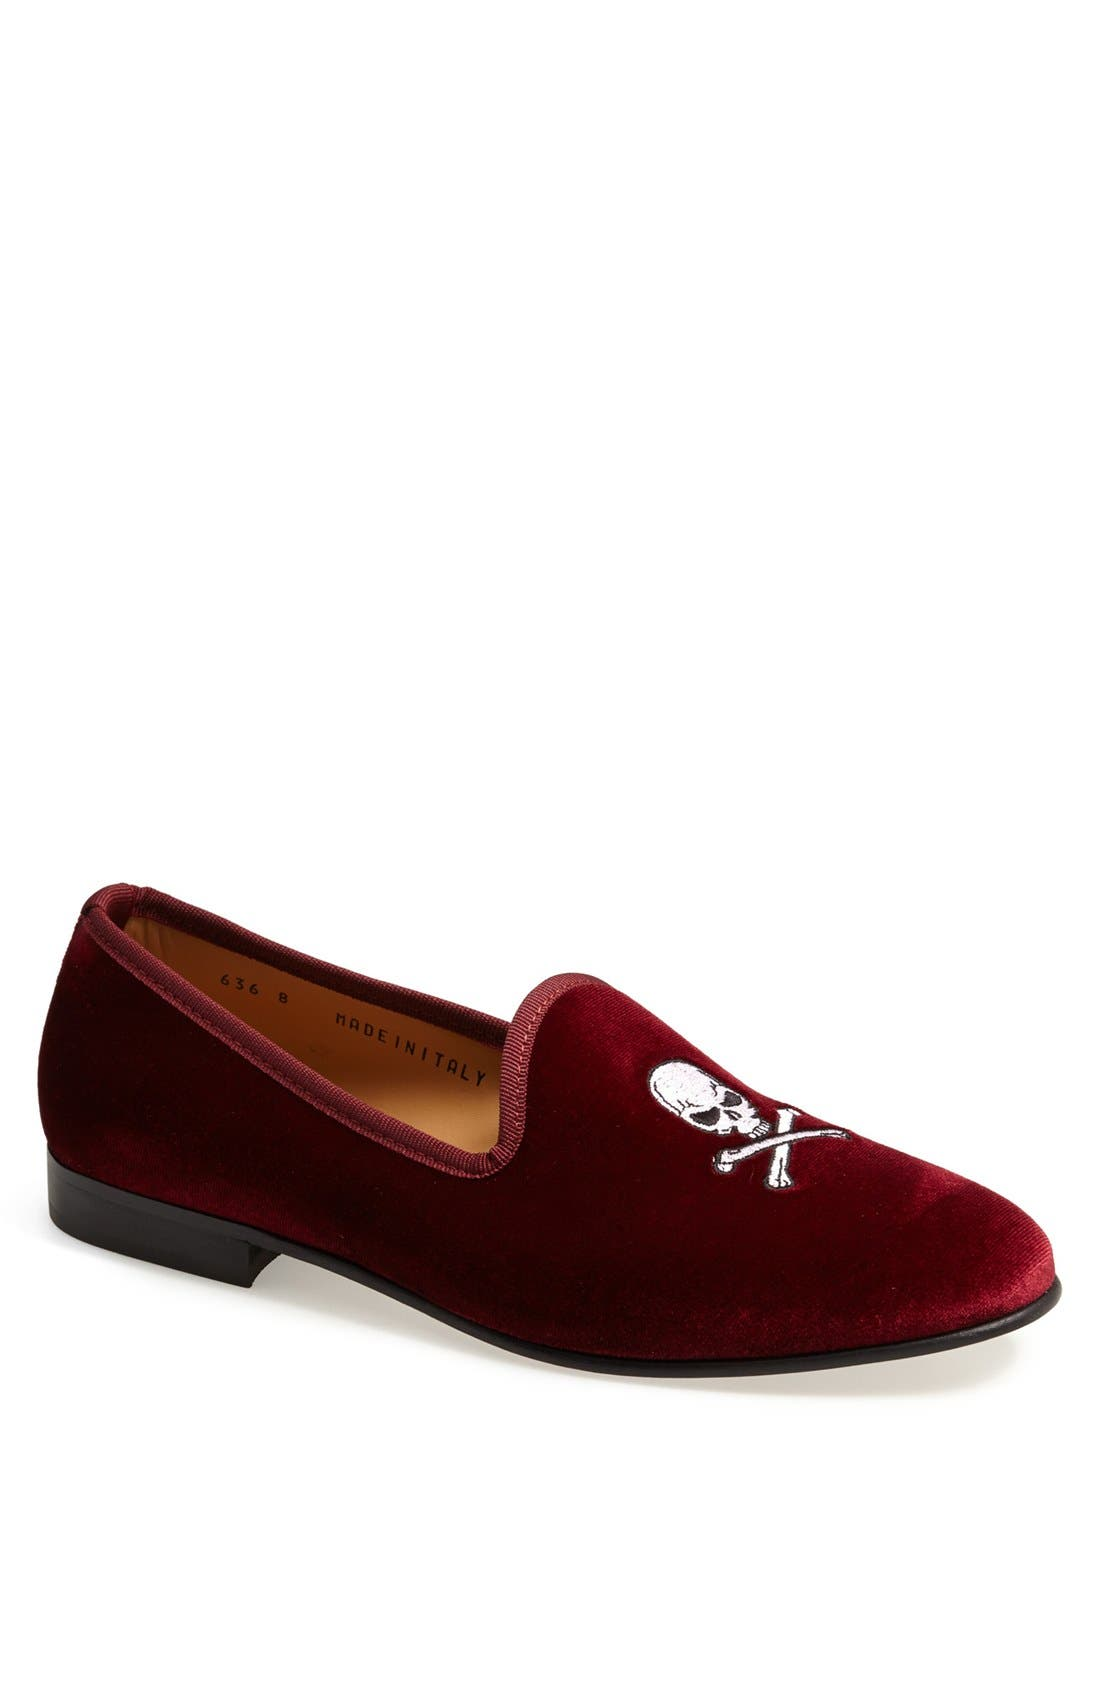 Alternate Image 1 Selected - Del Toro Velvet Loafer